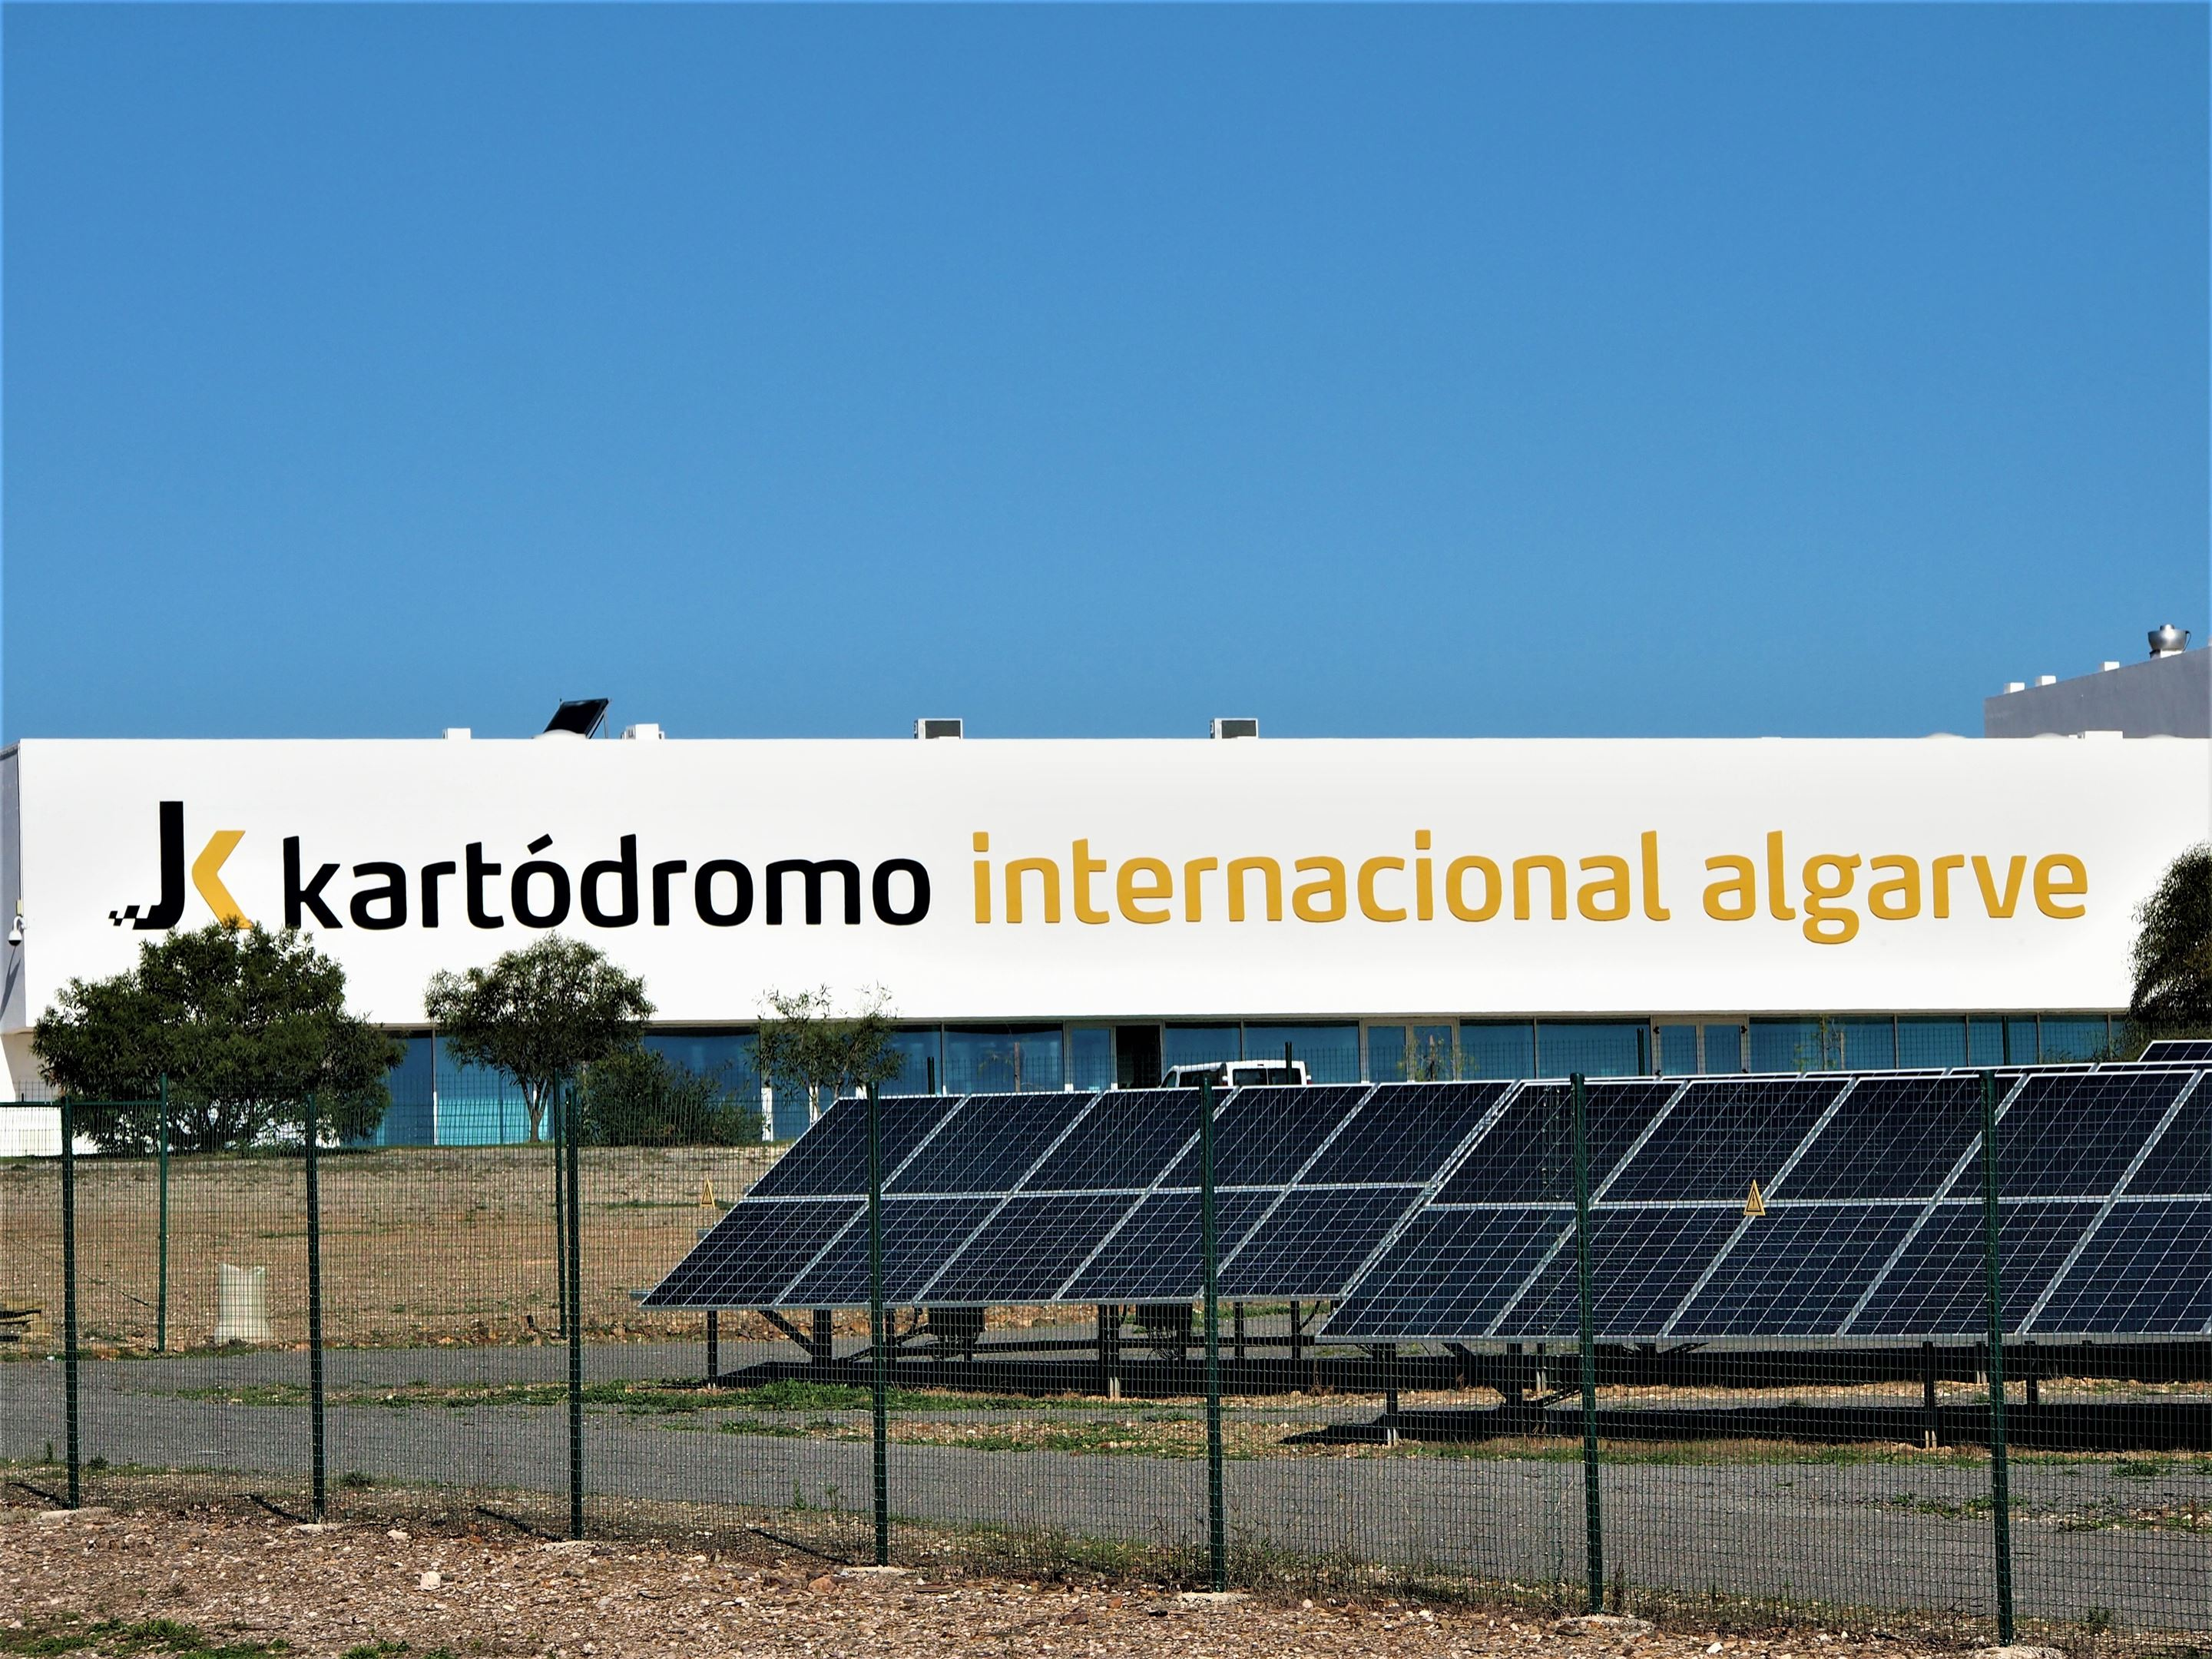 Kartódromo Internacional do Algarve, Portimão